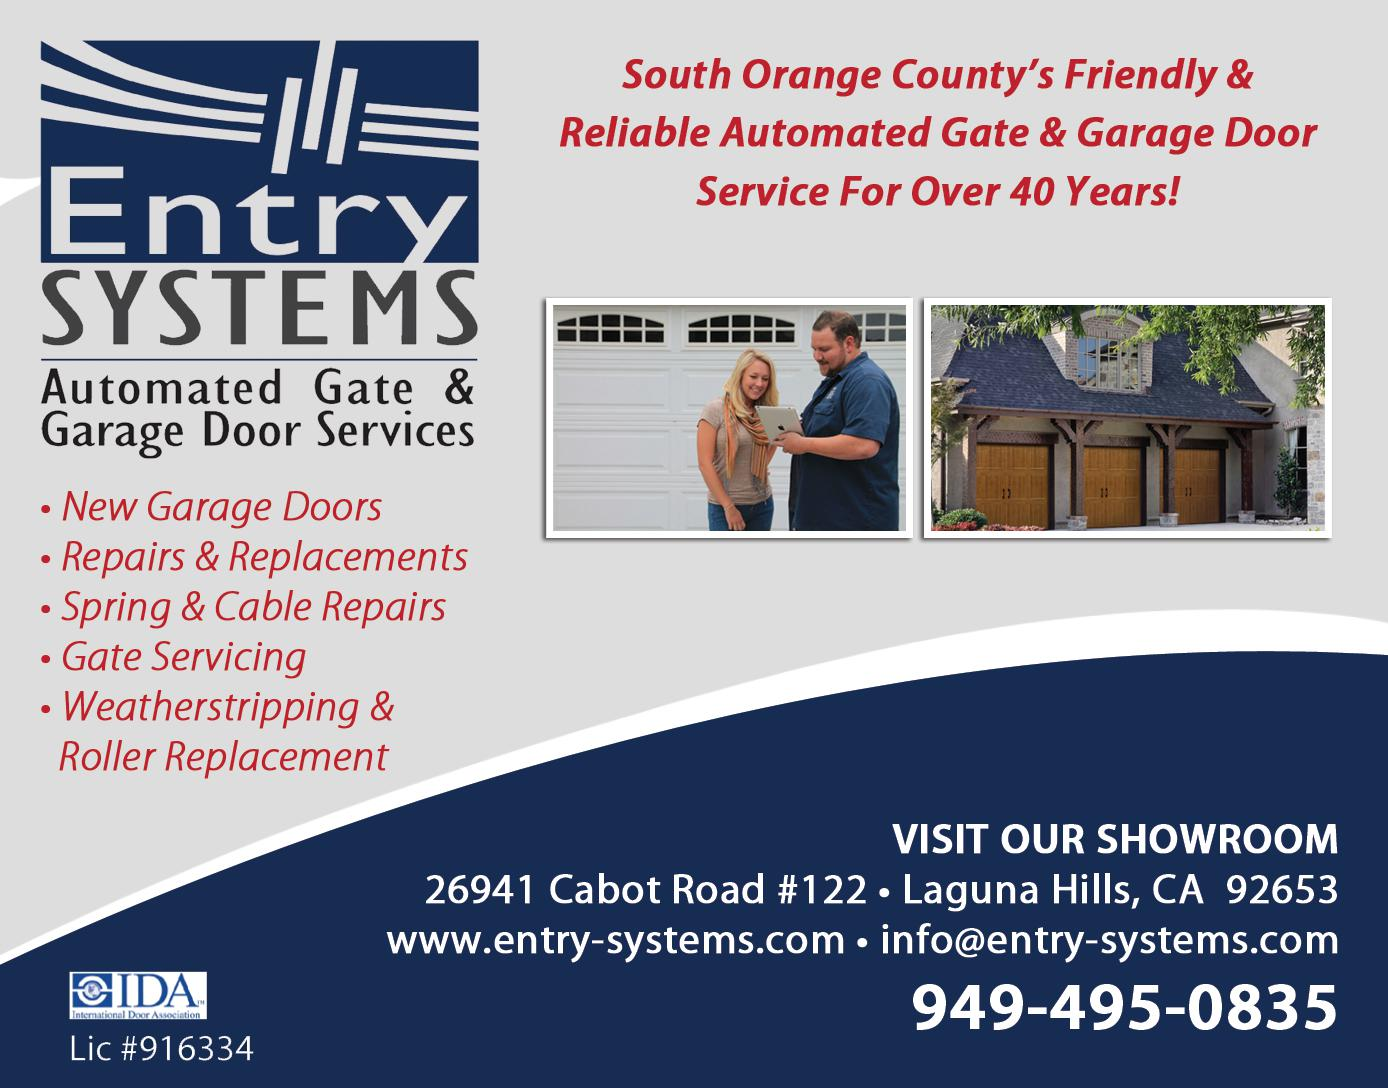 Entry Systems Automated Gate & Garage Door Service